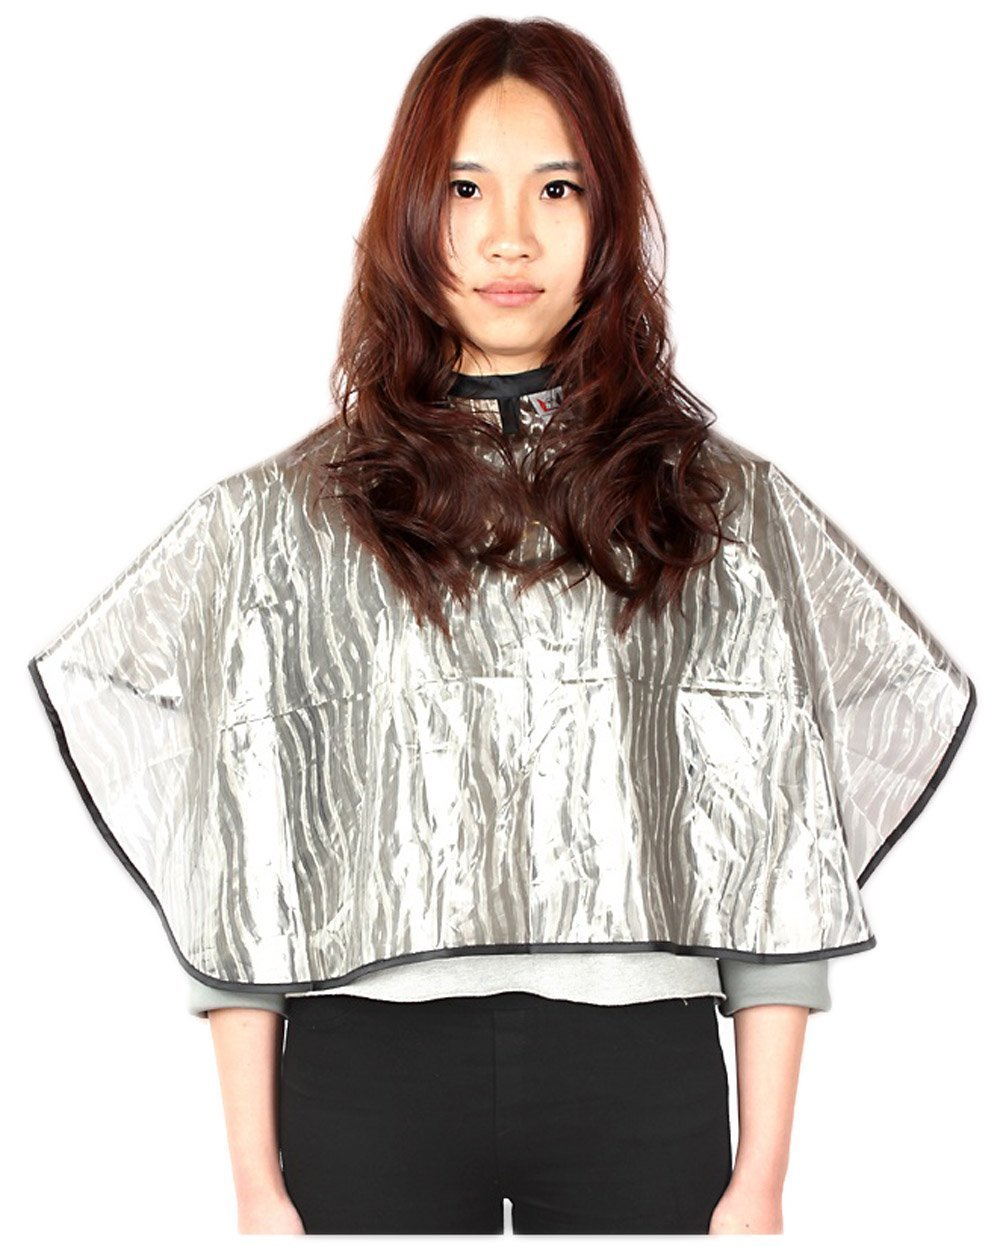 Short Salon Barbers All-purpose Cape, Waterproof Coloring Cape with Velcro Closure (Pack of 1) Perfe Hair SW011